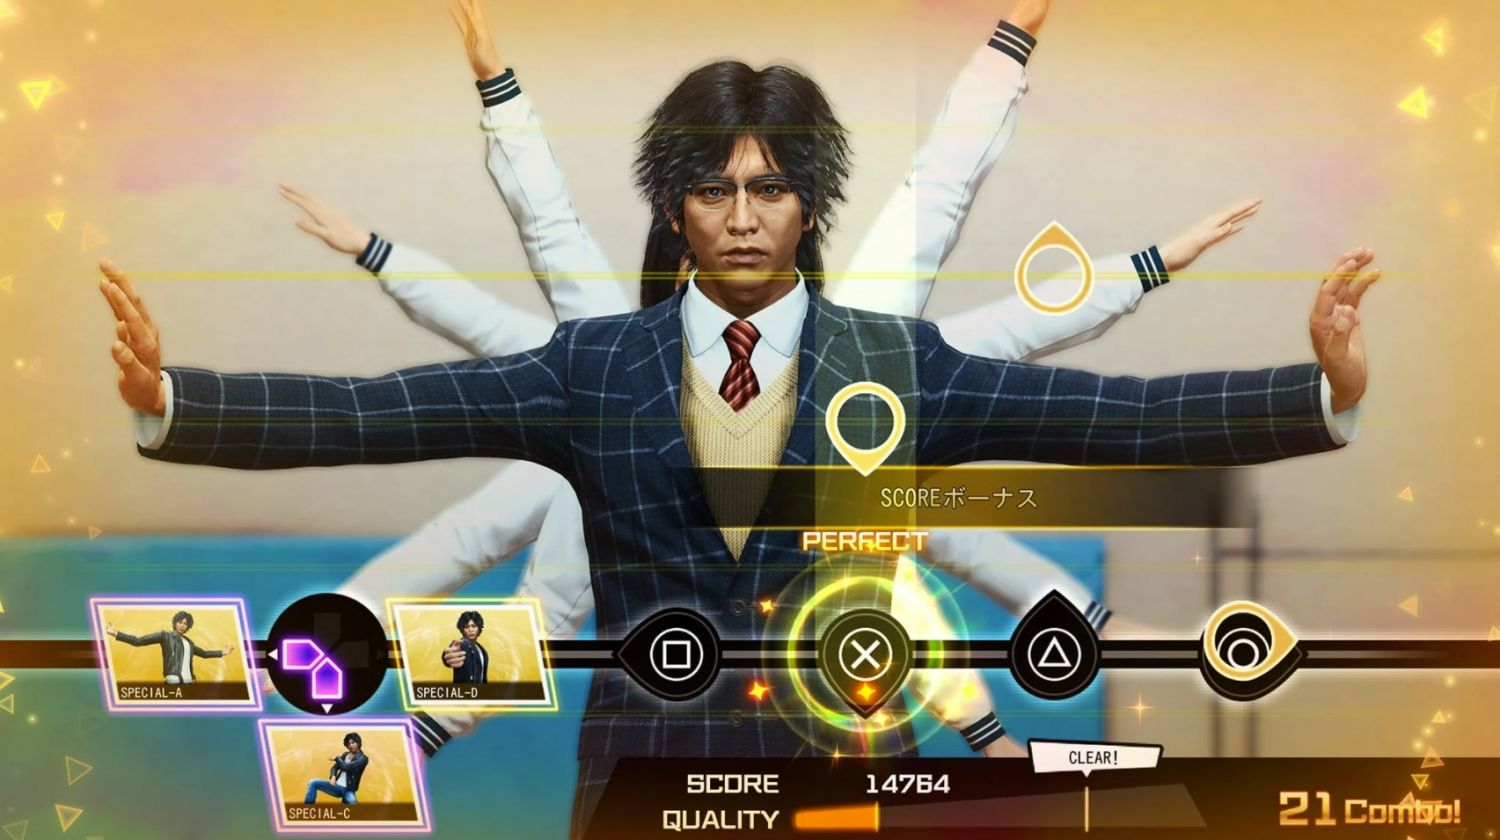 Geek Review: Lost Judgment - High school shenanigans